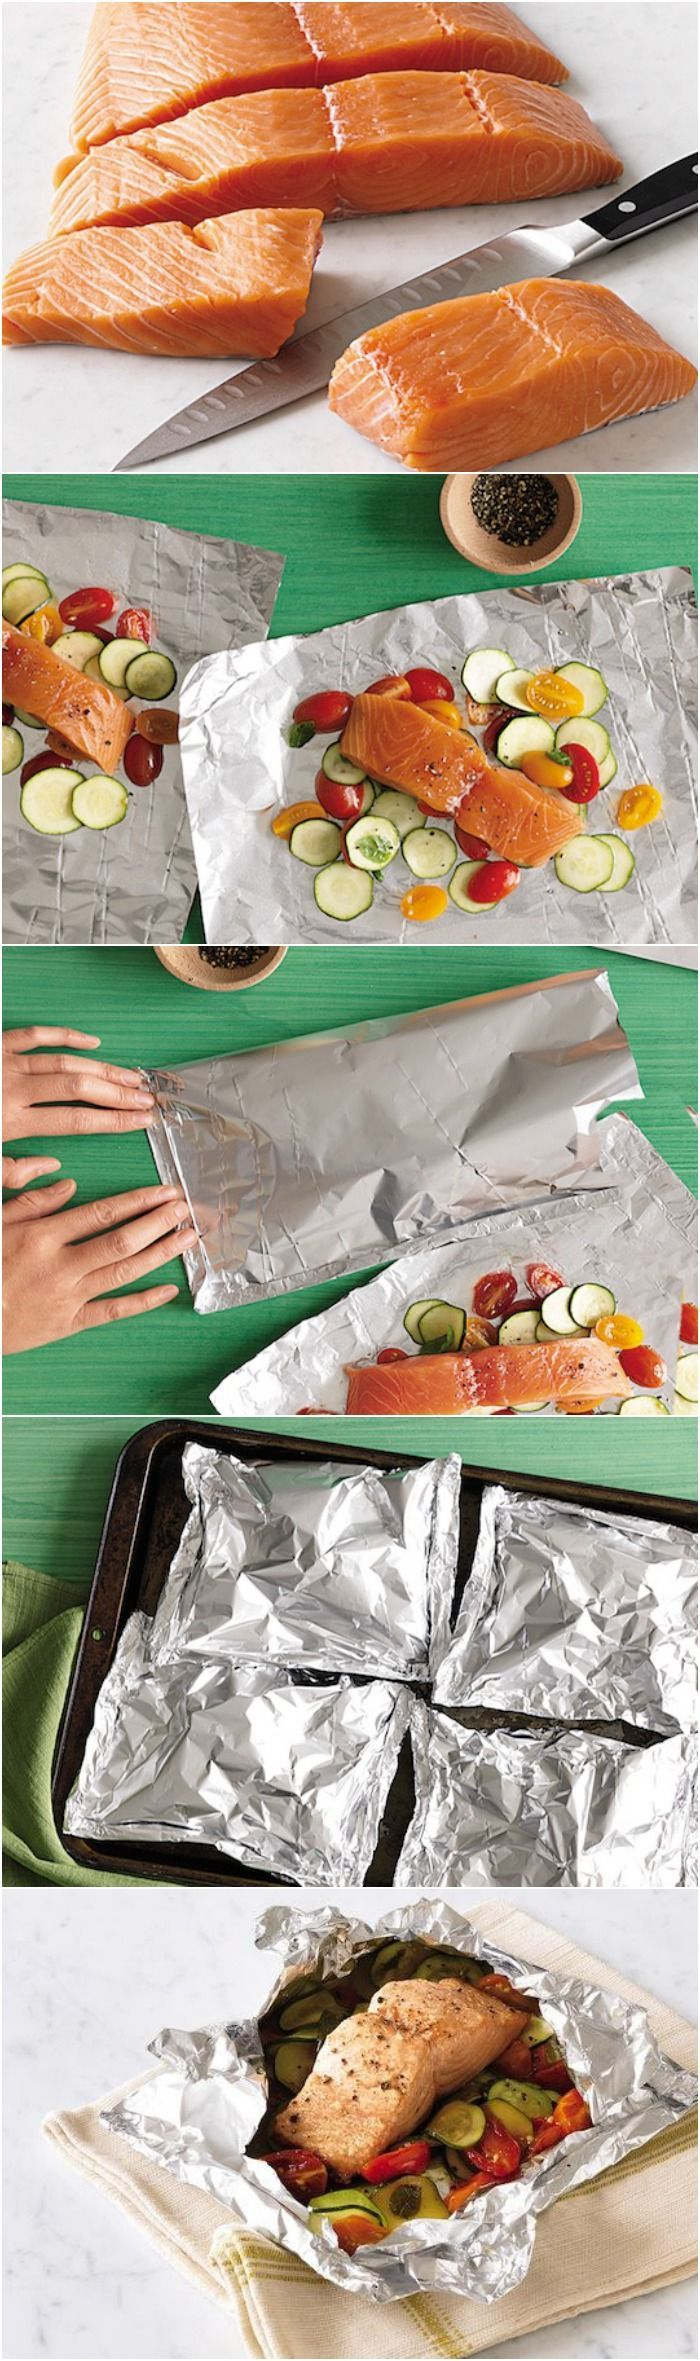 Steamed Salmon Recipe With Veggies with Zucchini, Tomato, and Basil or Spinach with Lemon - ofen baked: Juicier salmon